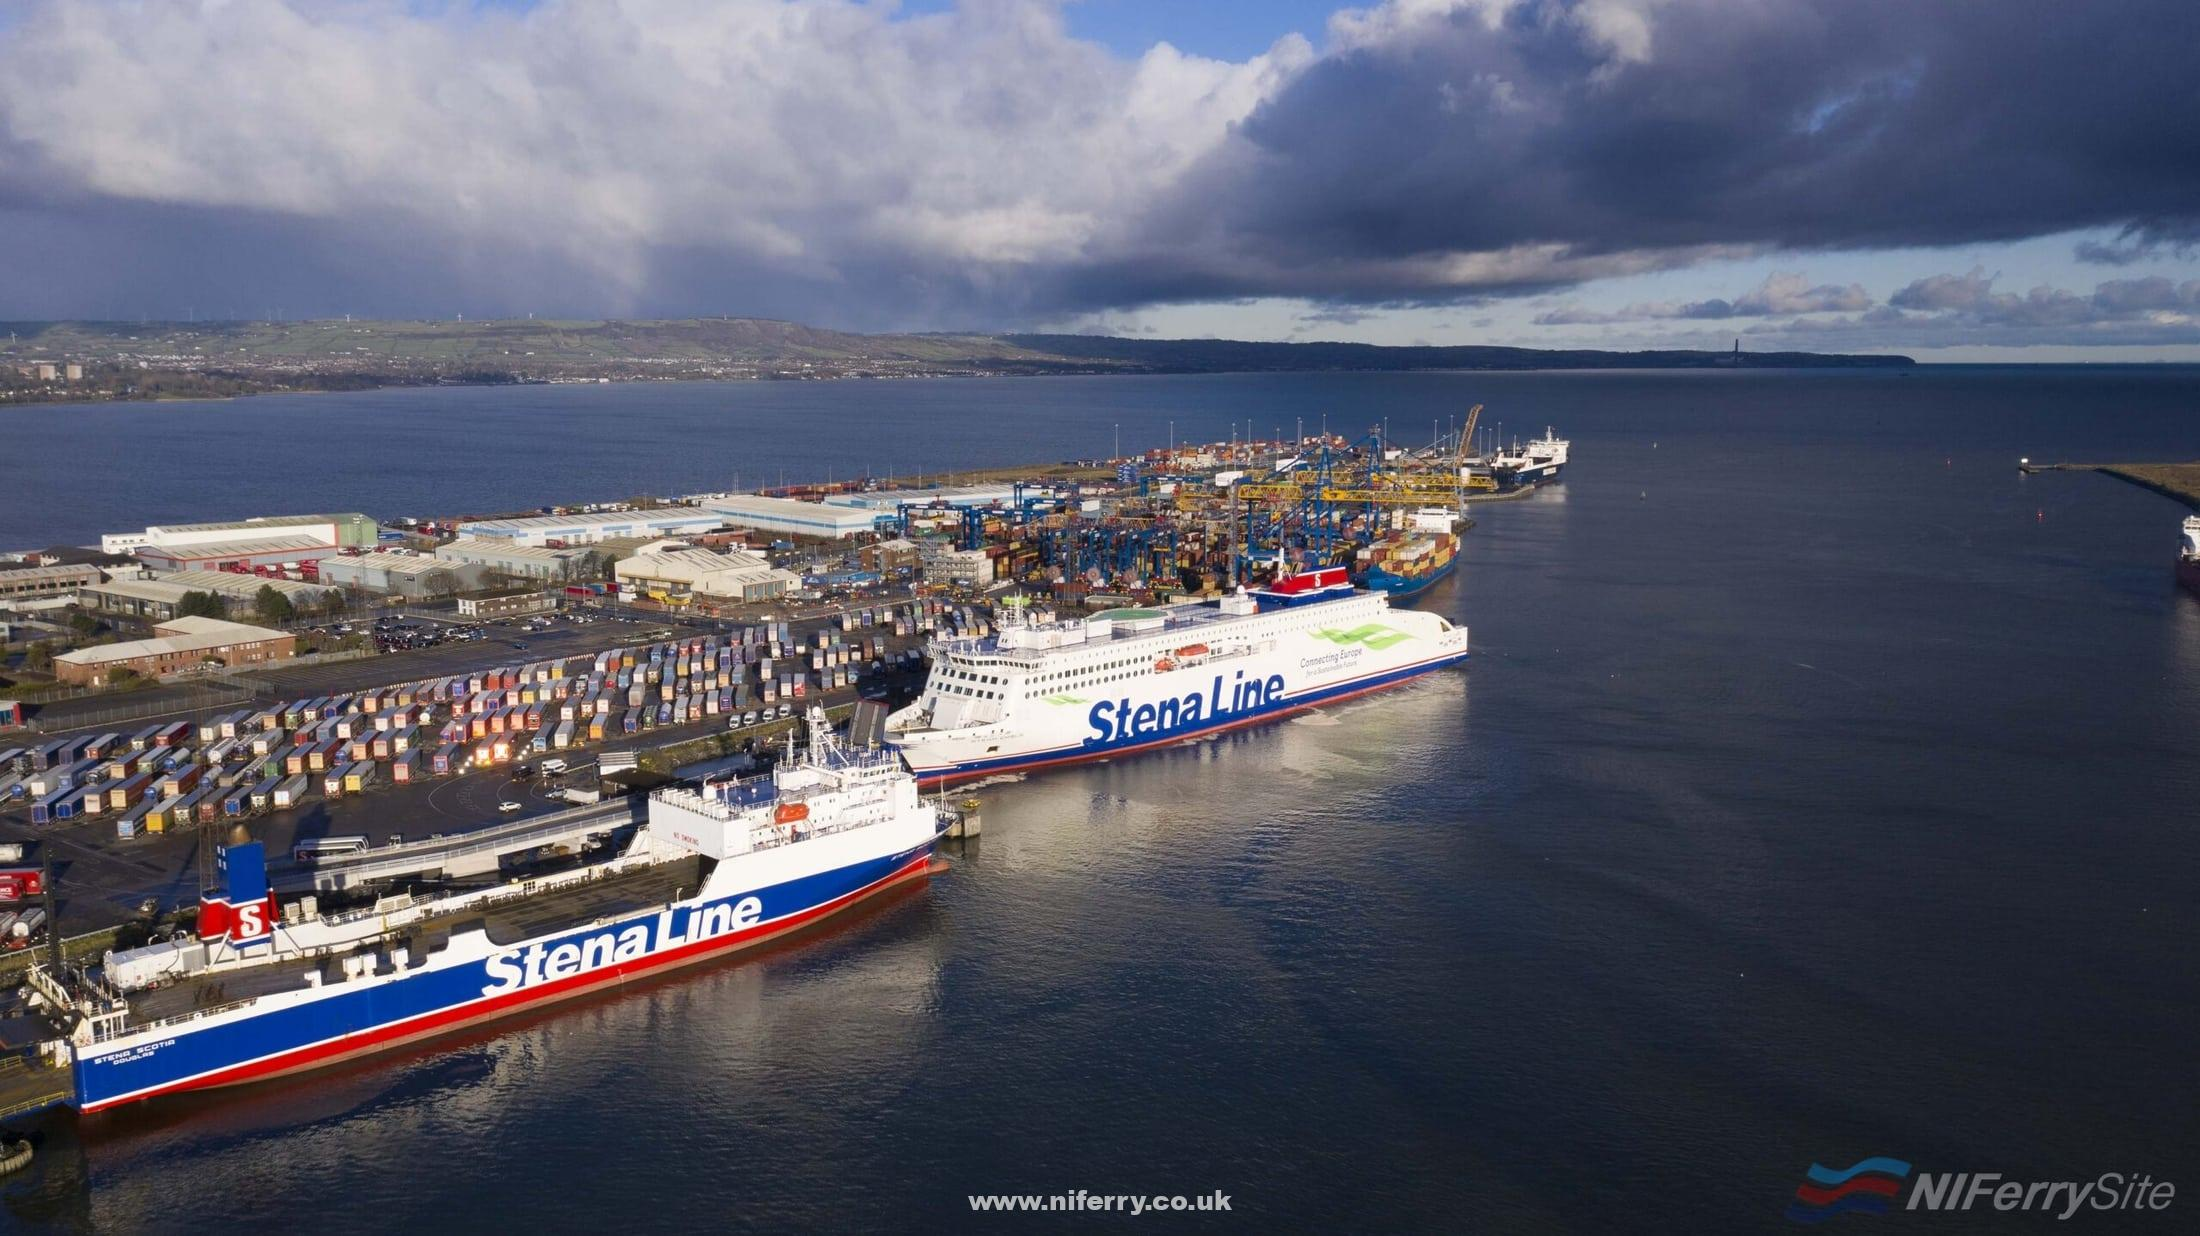 STENA EMBLA on the berth at Victoria Terminal 2 following her maiden arrival in Belfast, 02.01.2021. Ahead of her is the Belfast - Heysham freight ship STENA SCOTIA. In the background is SEATRUCK PANORAMA which is currently on charter to Stena Line as the third ship on the Belfast - Liverpool route. Stena Line.